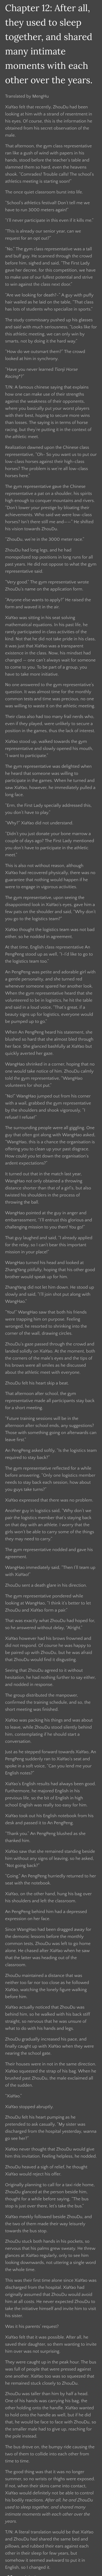 MW(R) Chapter 12